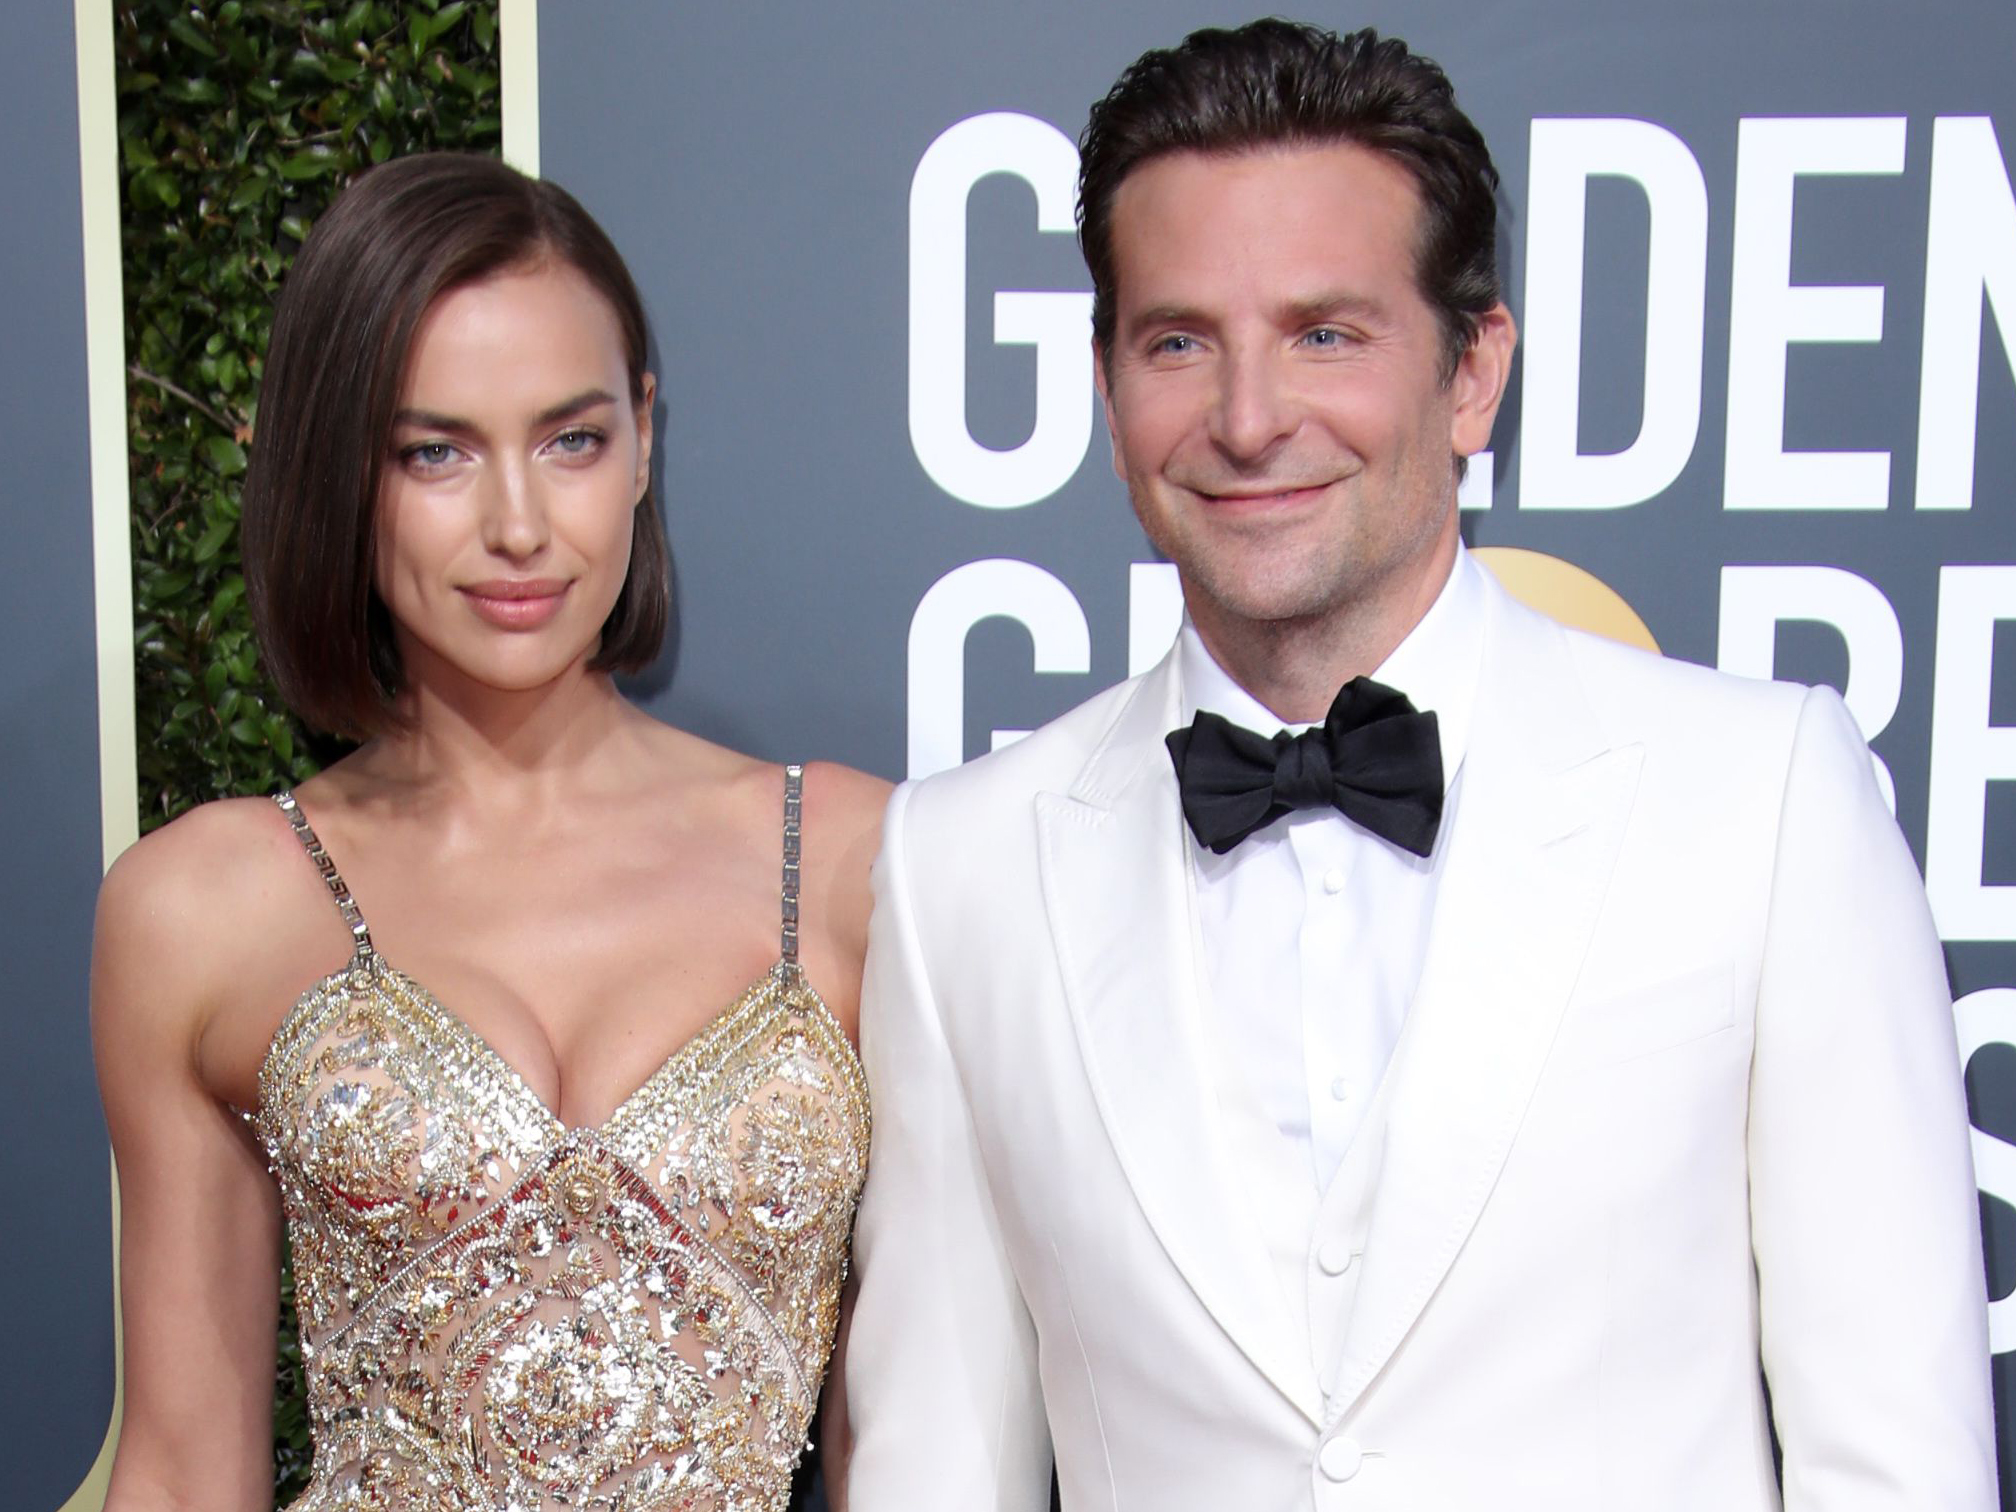 Bradley Cooper and Irina Shayk SPLIT after four years together 2